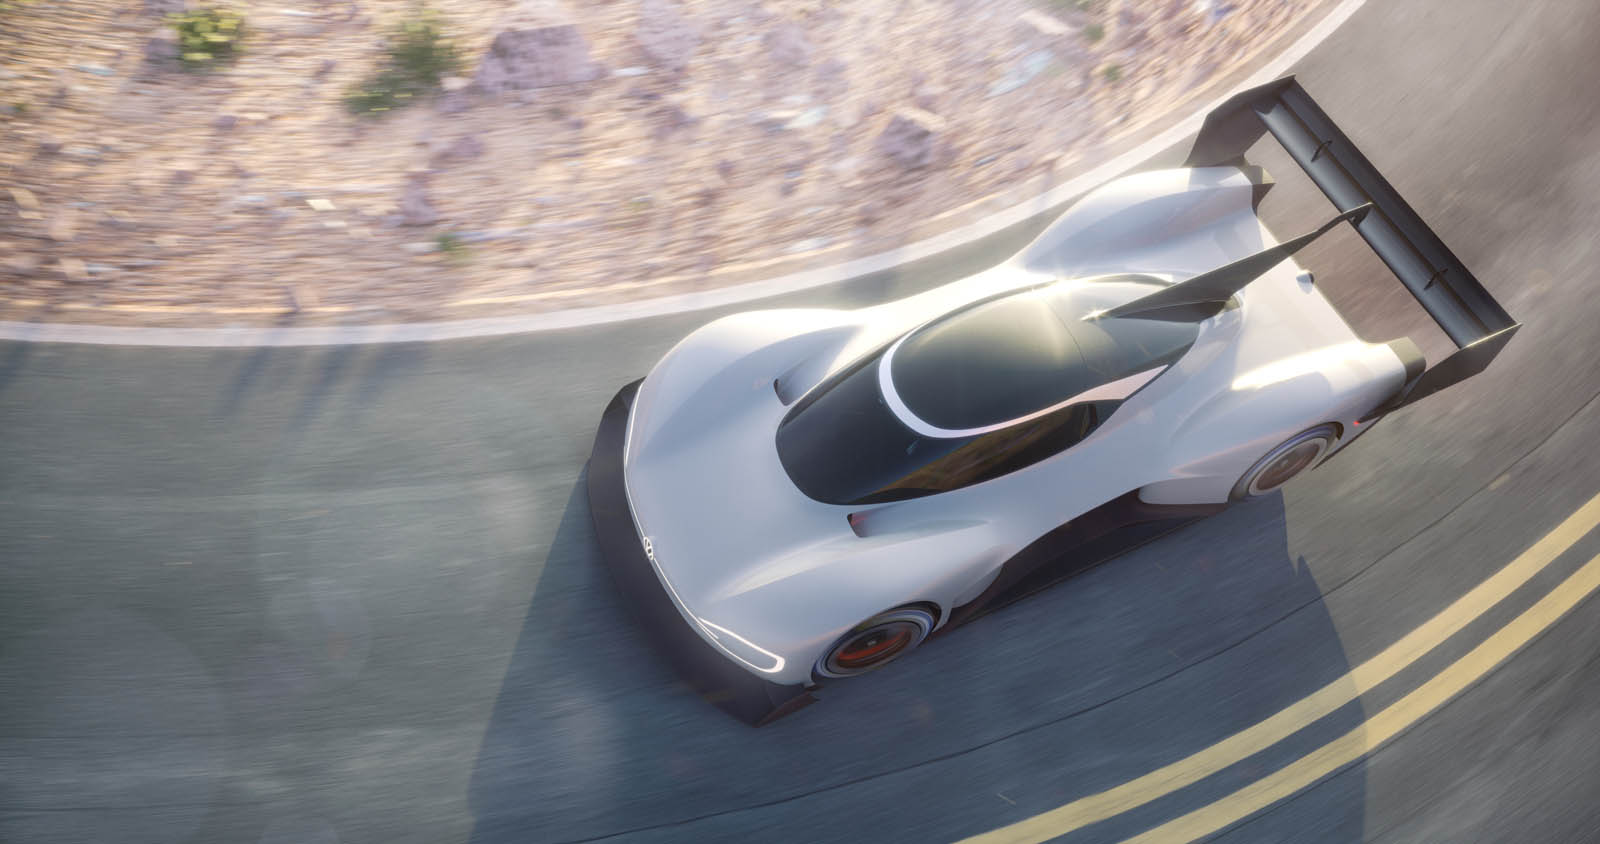 Volkswagen to return to Pikes Peak Hill Climb with an all-electric vehicle